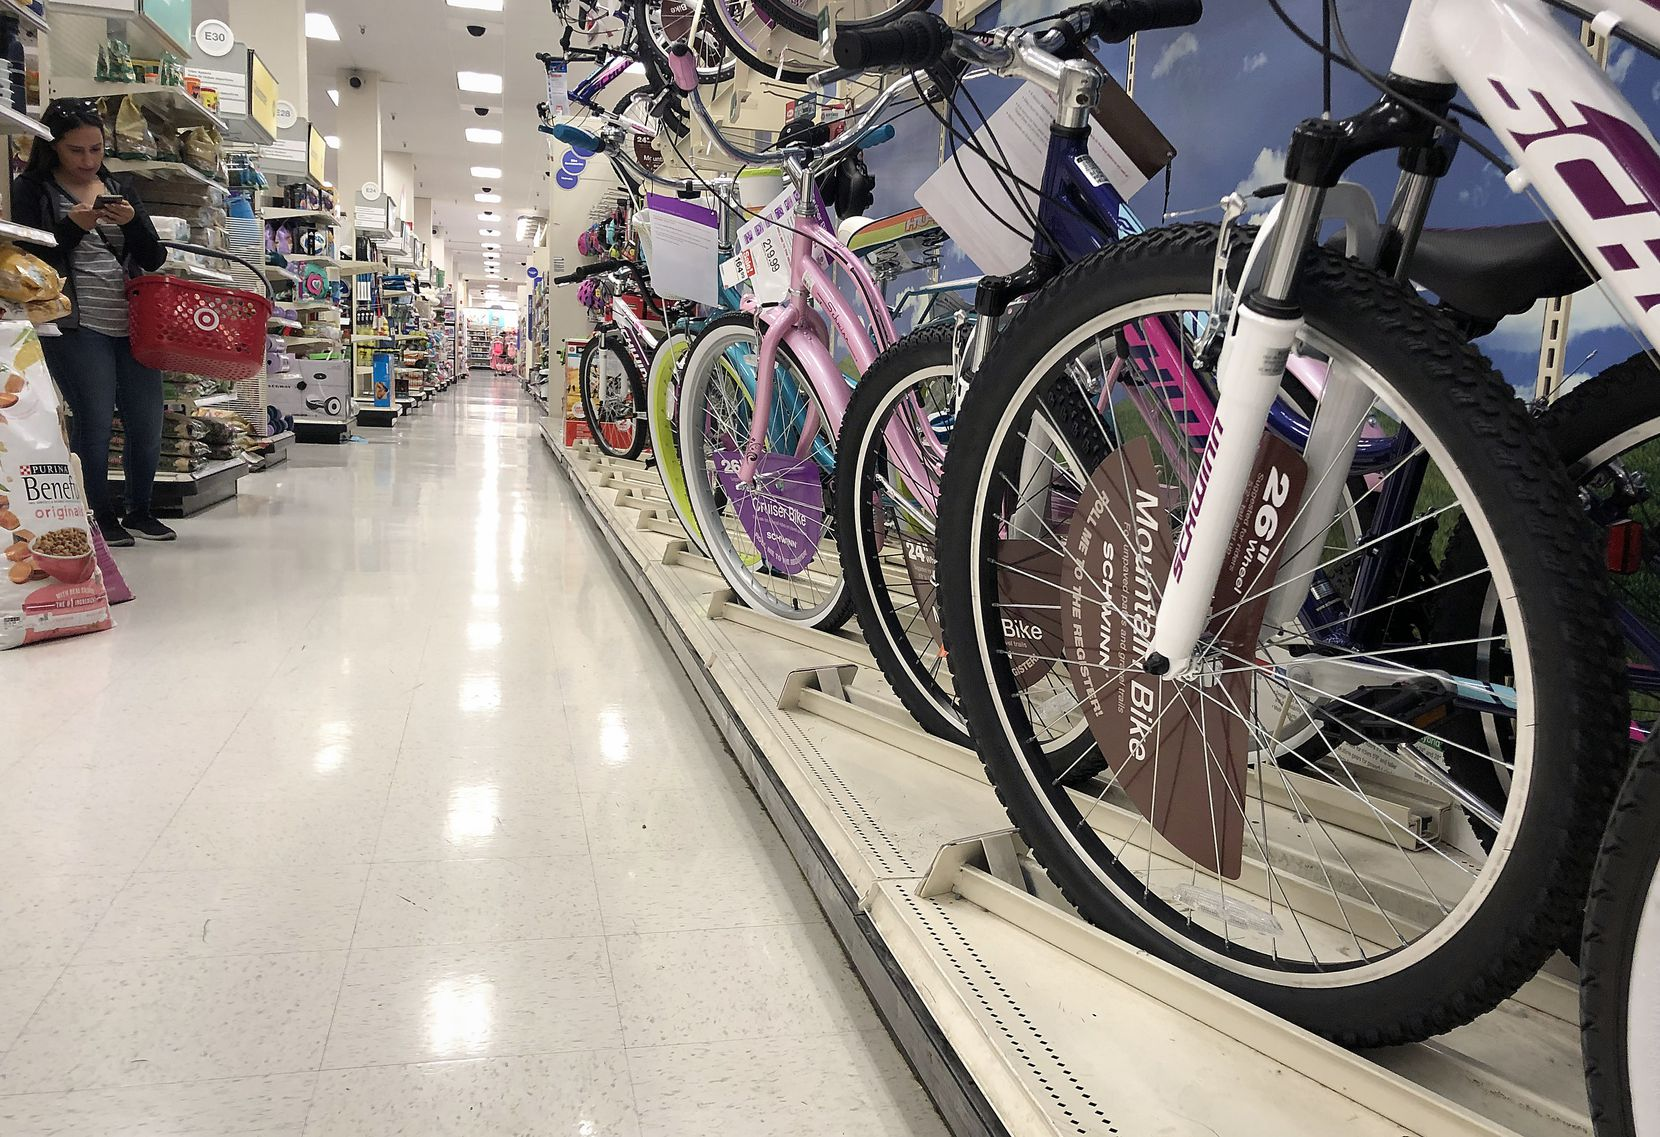 Bicycles produced in China are lined up for sale in a Target store on May 13, 2019 in Los Angeles, California. Prices on many goods imported from China, including bicycles, are likely to rise as President Trump enacted new tariffs on $200 billion worth of Chinese products.